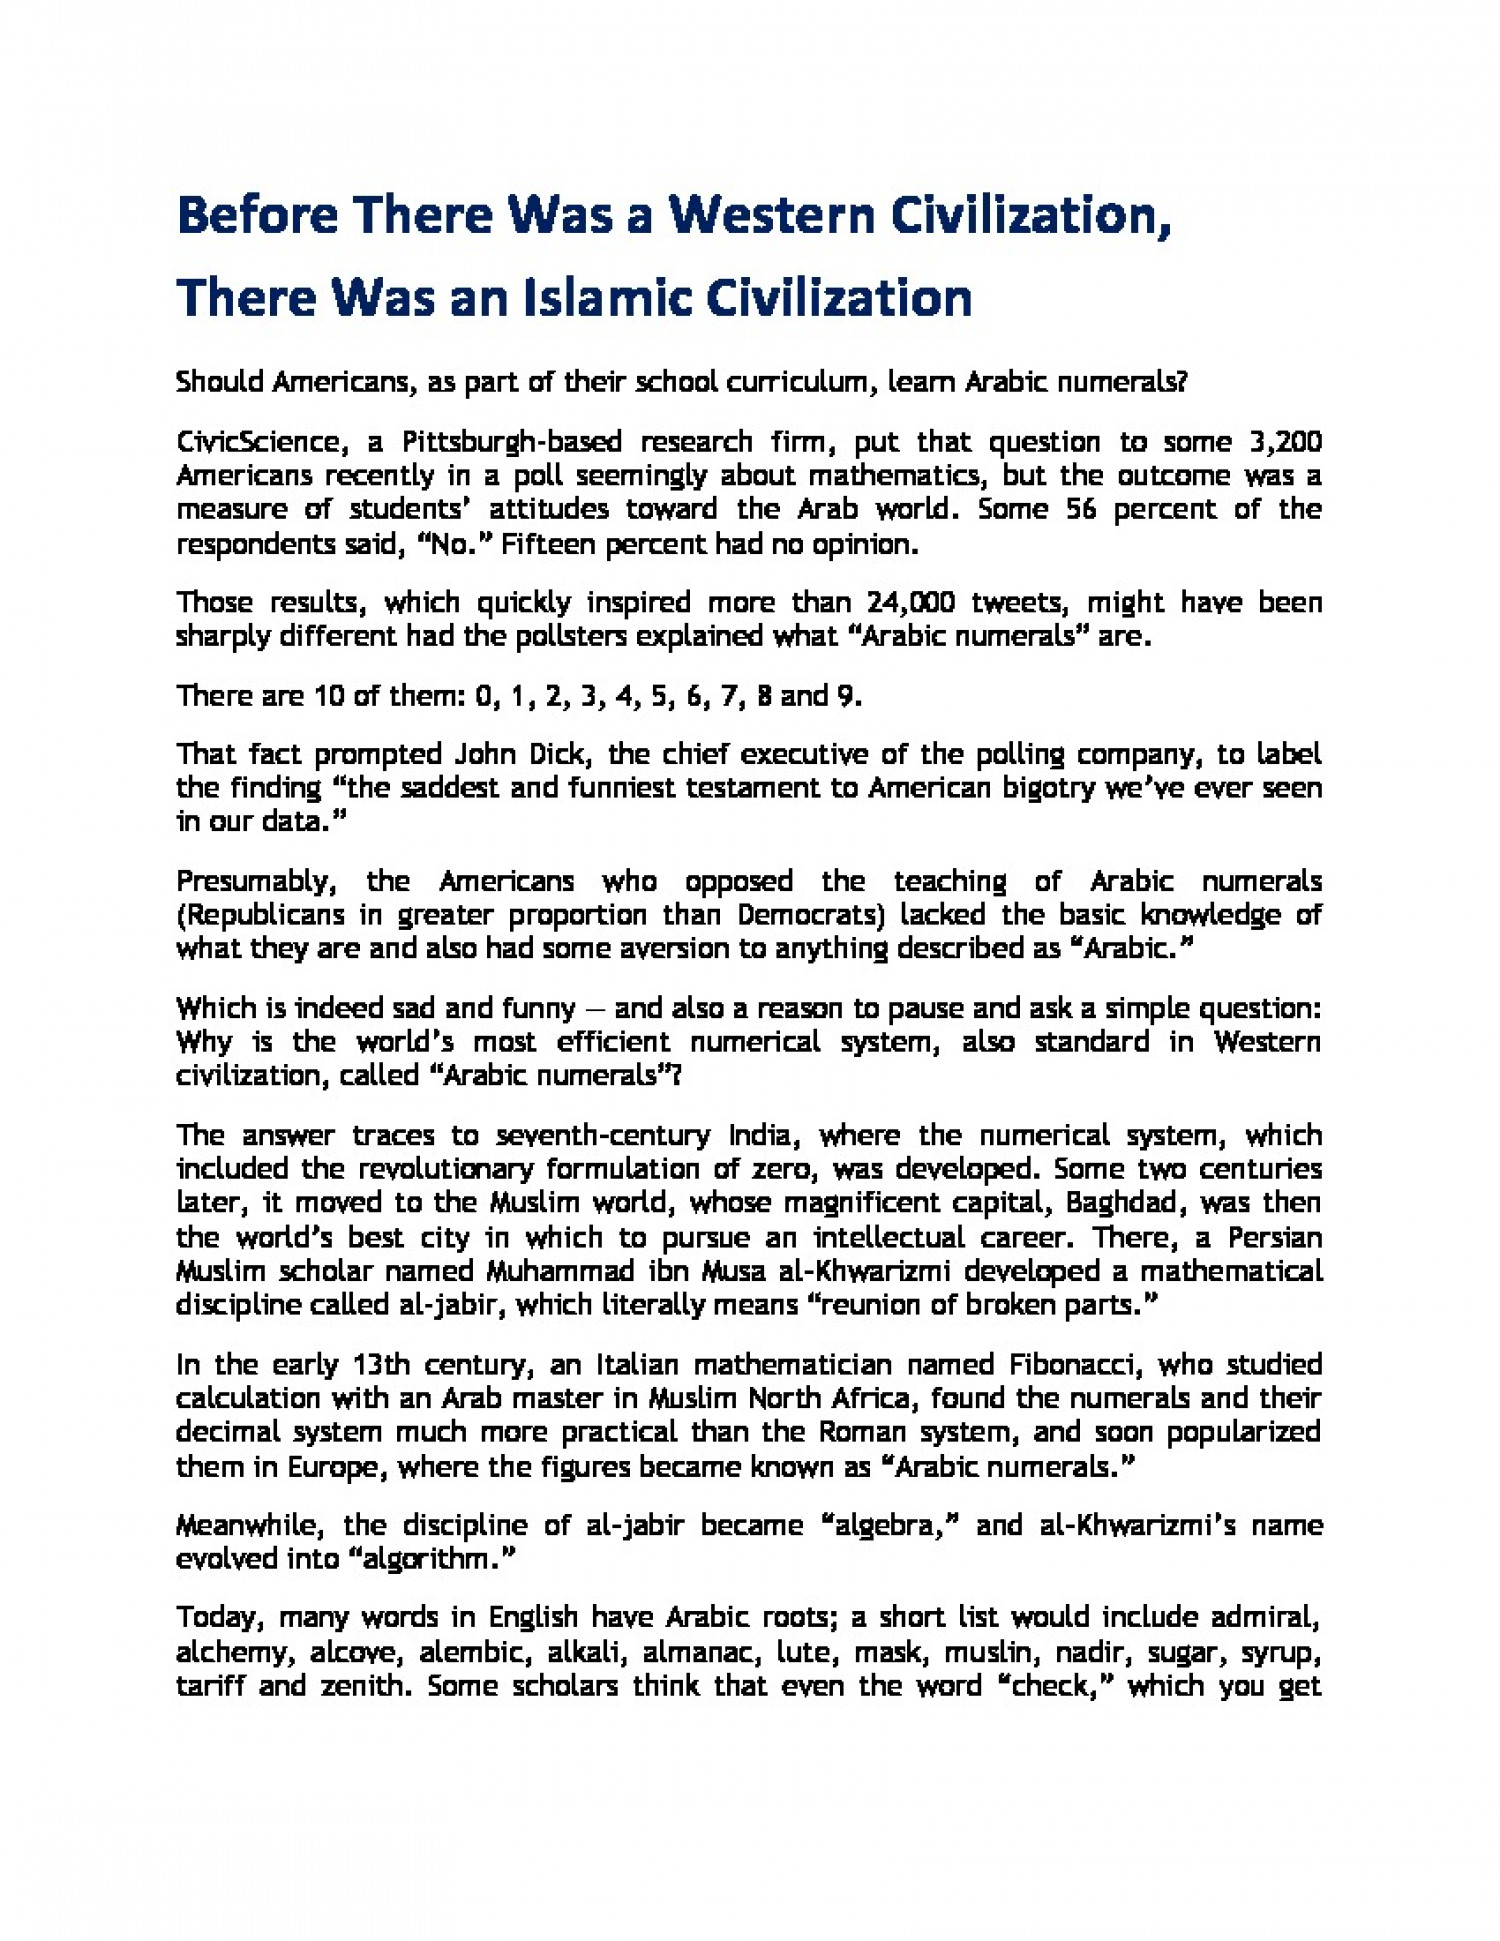 Before There Was a Western Civilization, There Was an Islamic Civilization Infographic